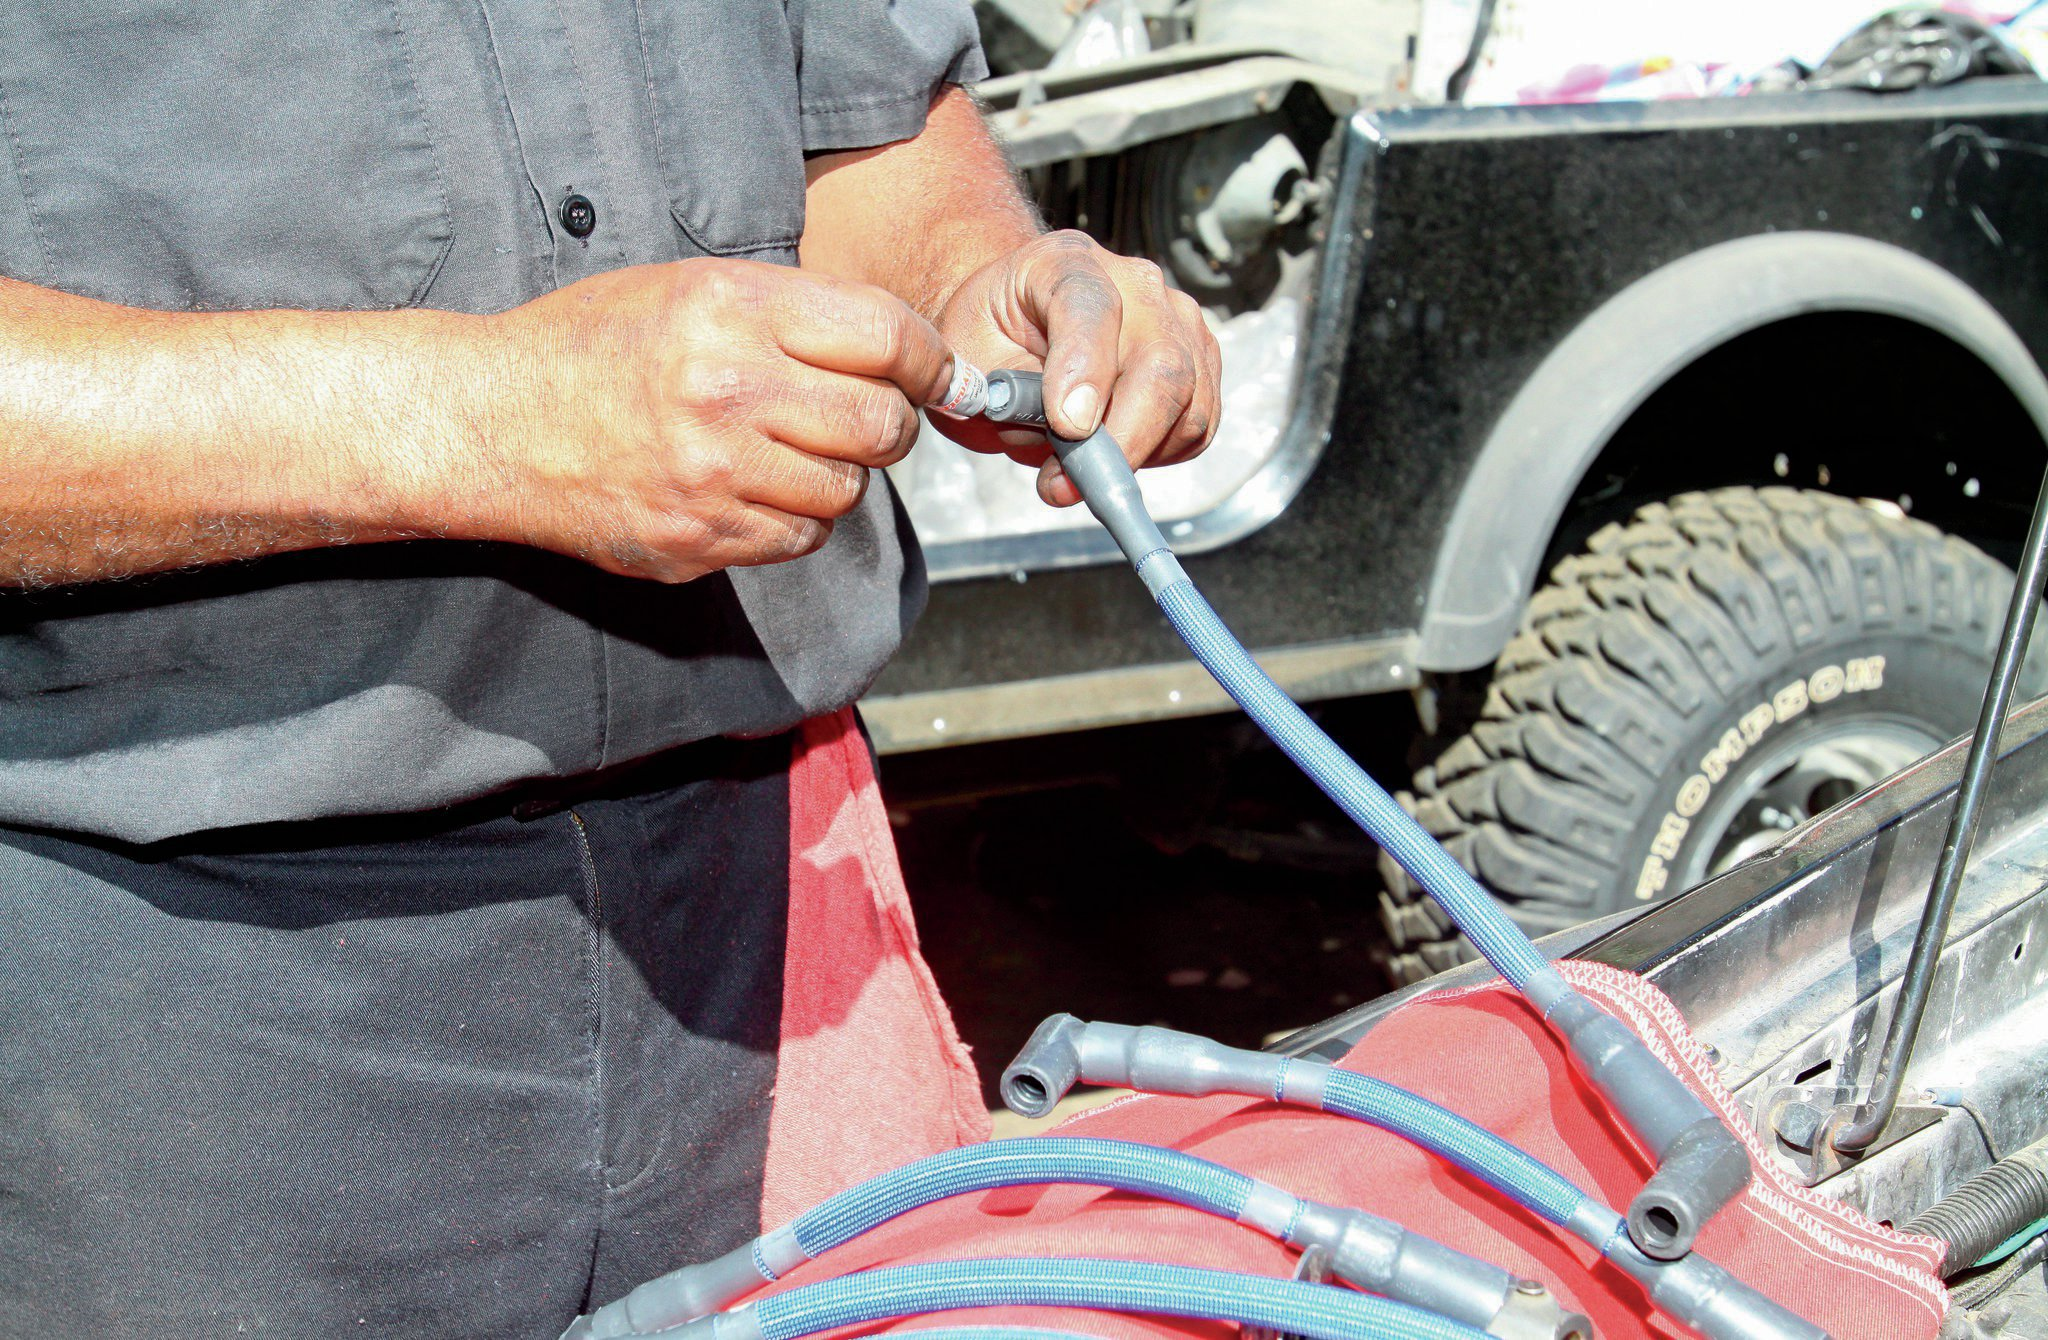 The plug wires come from DUI with dielectric grease. While it is true it helps terminals not corrode, it doesn't actually decrease resistance. Its primary purpose is to make it so that the wire ends will come off the plugs or cap if needed. It's much like anti-seize for electrical parts.